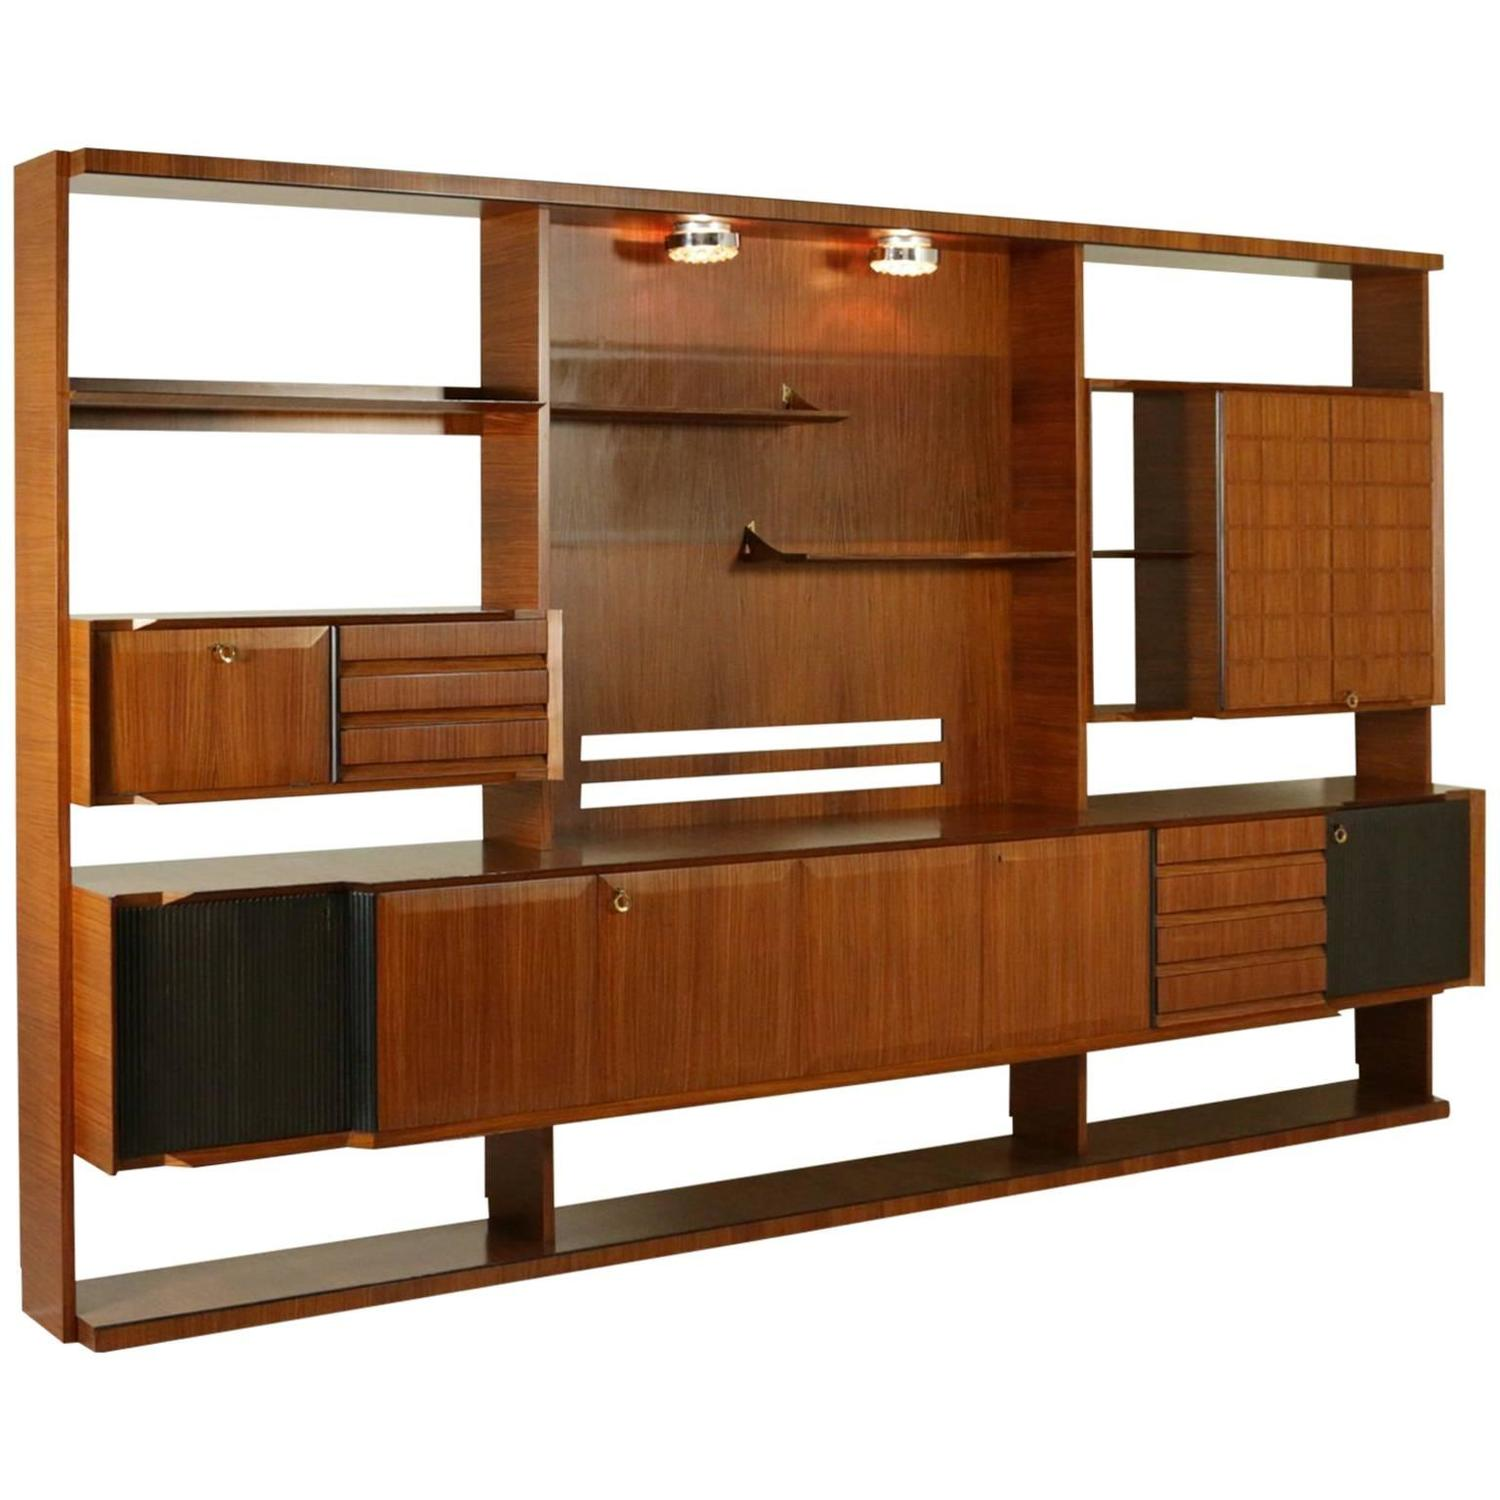 Wall Unit Modern Italian Design Mid Century Modern Wall Unit In Rosewood